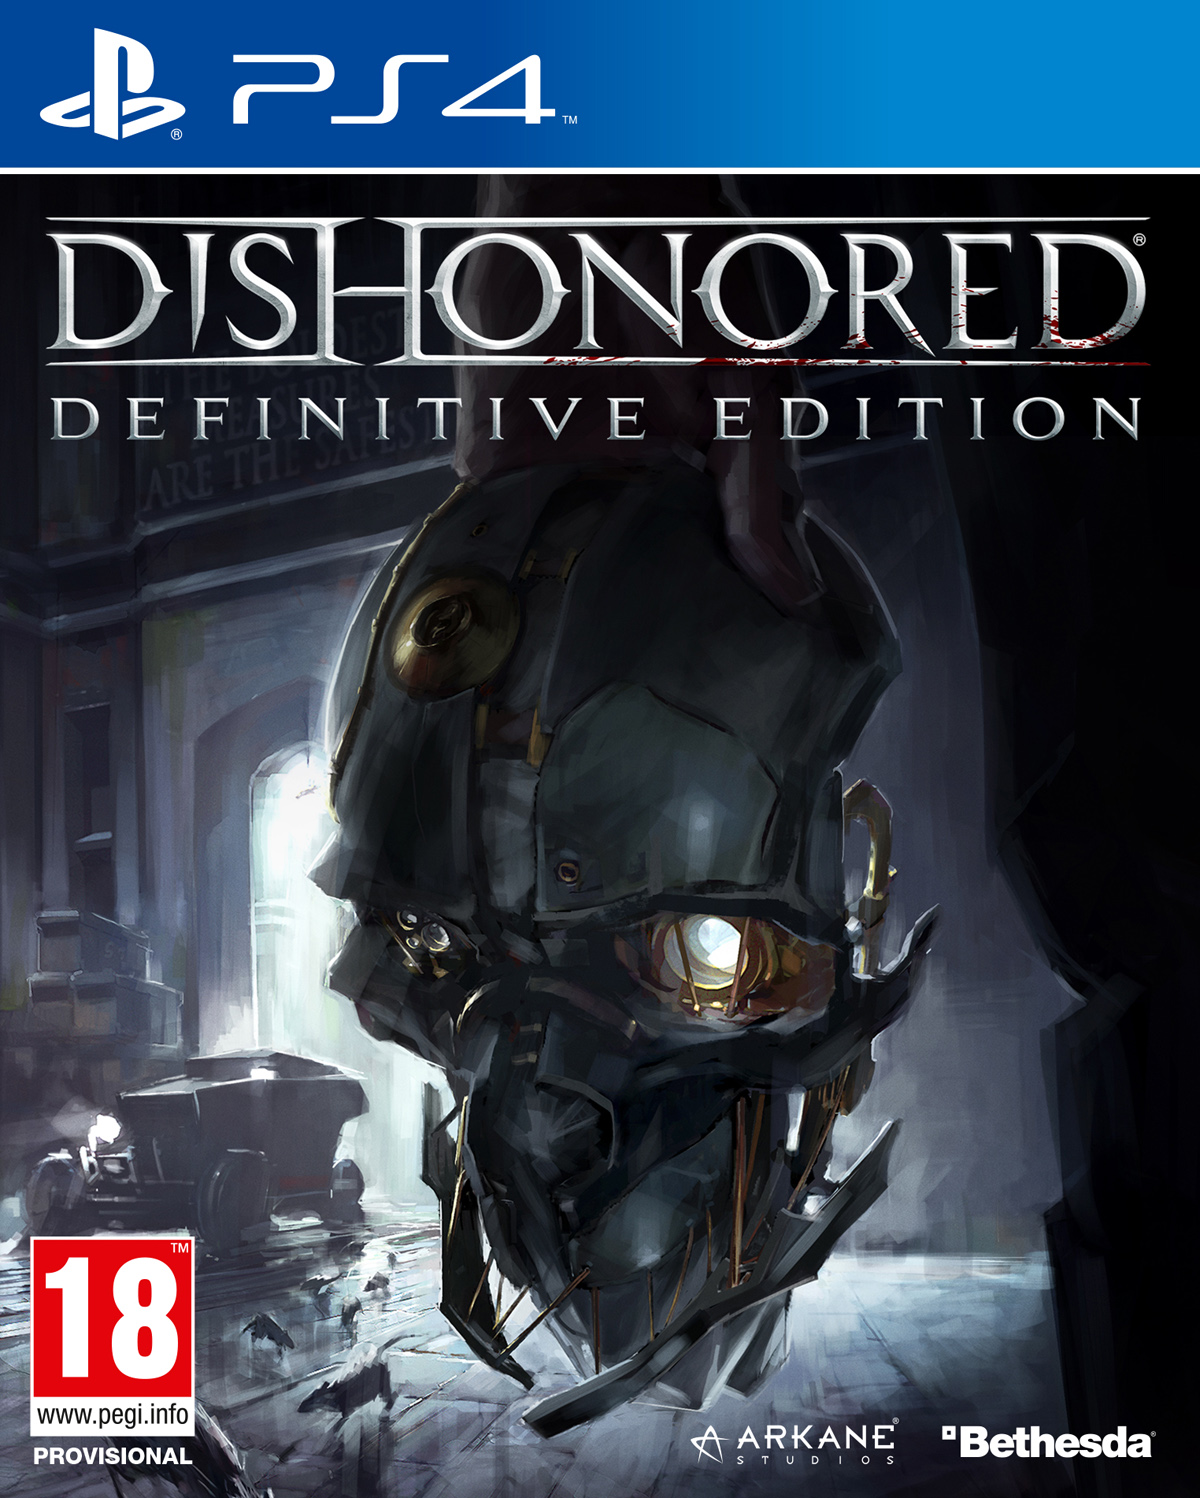 Dishonored - Definitive Edition [PS4] 5.05 / 6.72 / 7.02 [EUR] (2012) [Русский] (v1.01)